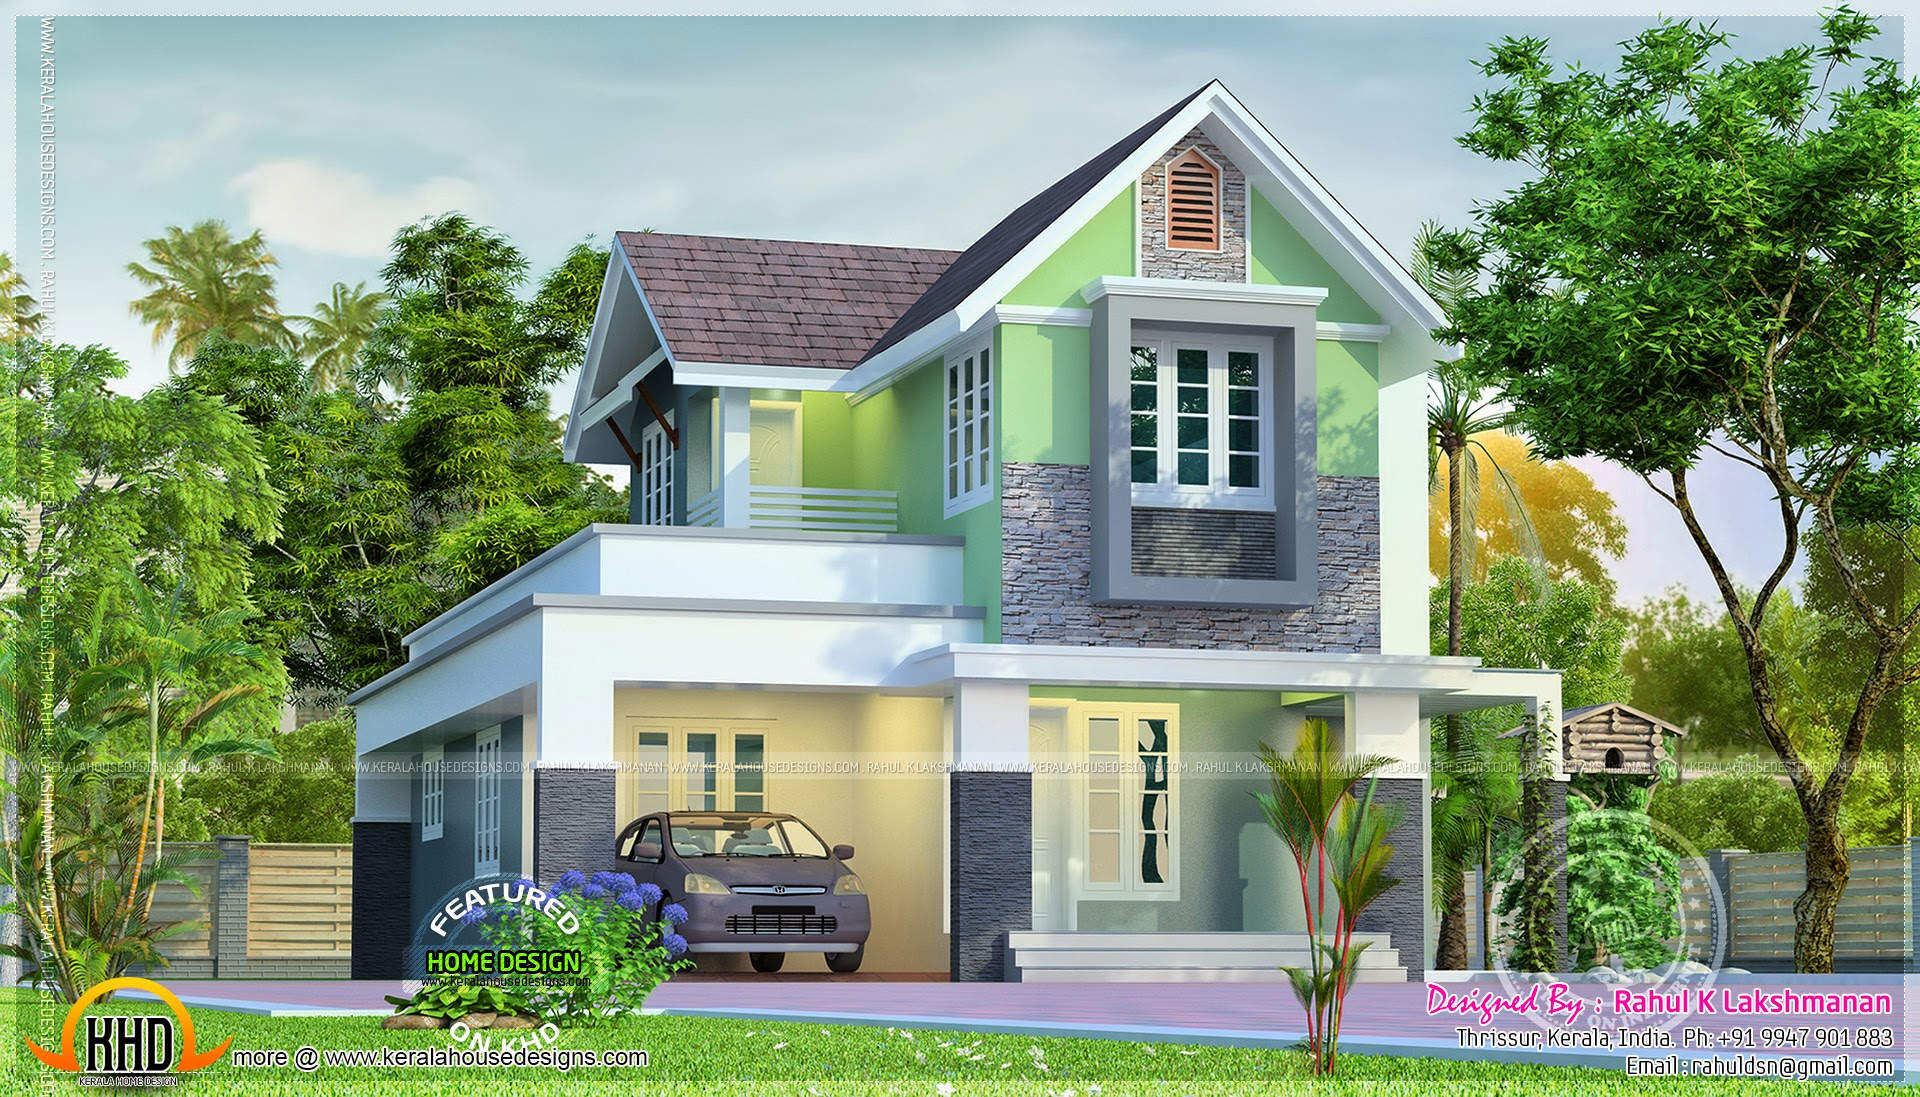 Cute Little House Plan Kerala Home Design And Floor Plans